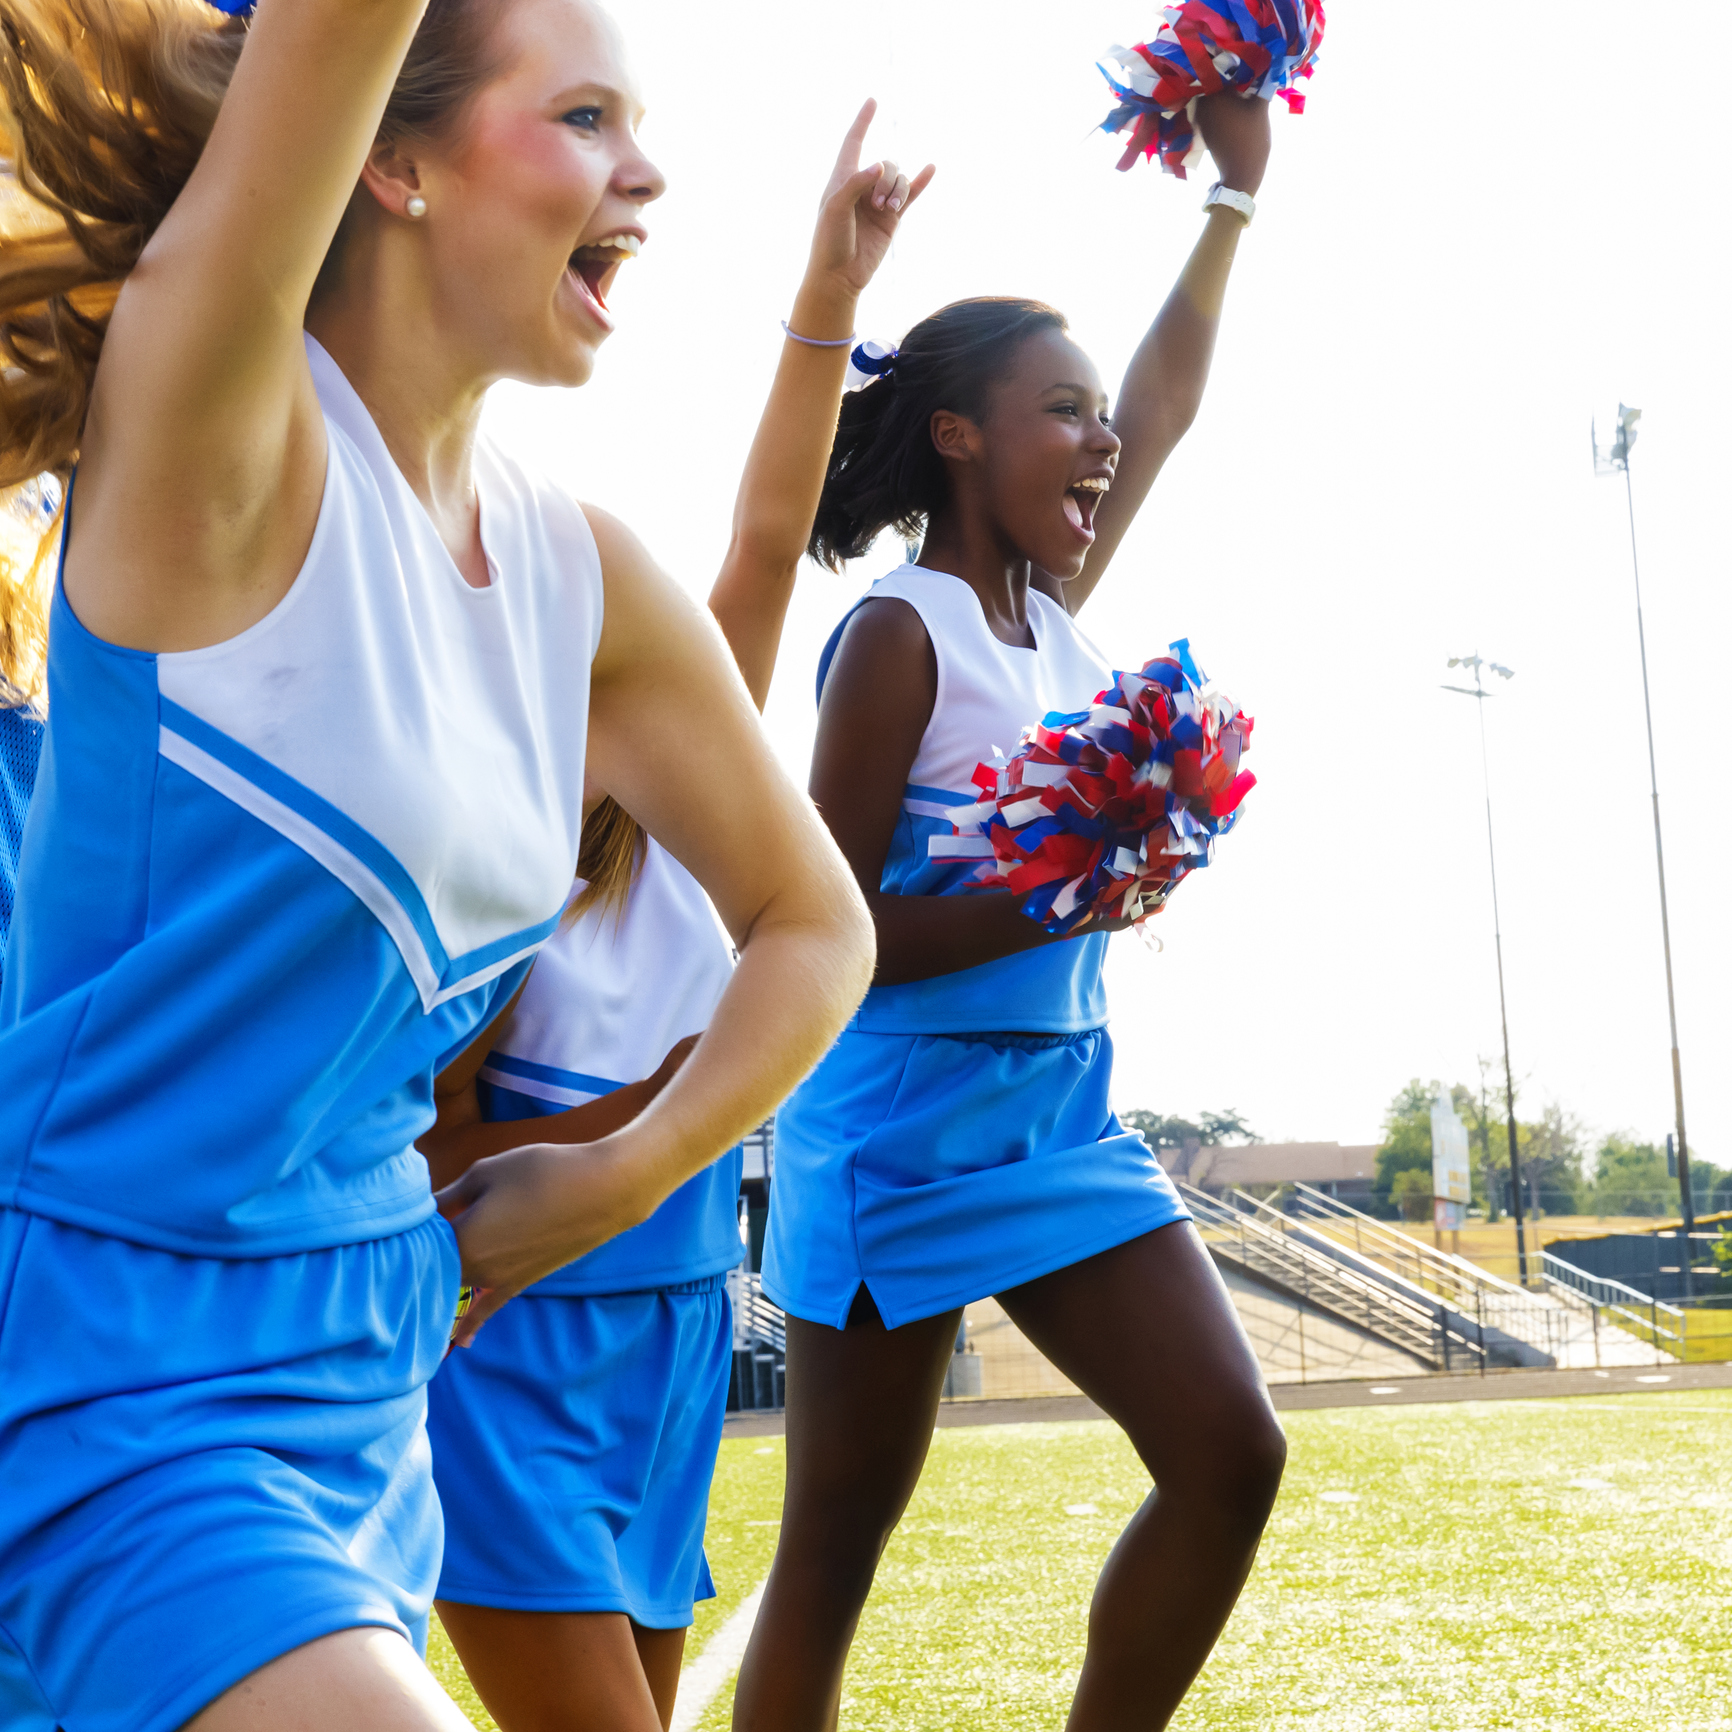 Football Cheerleaders